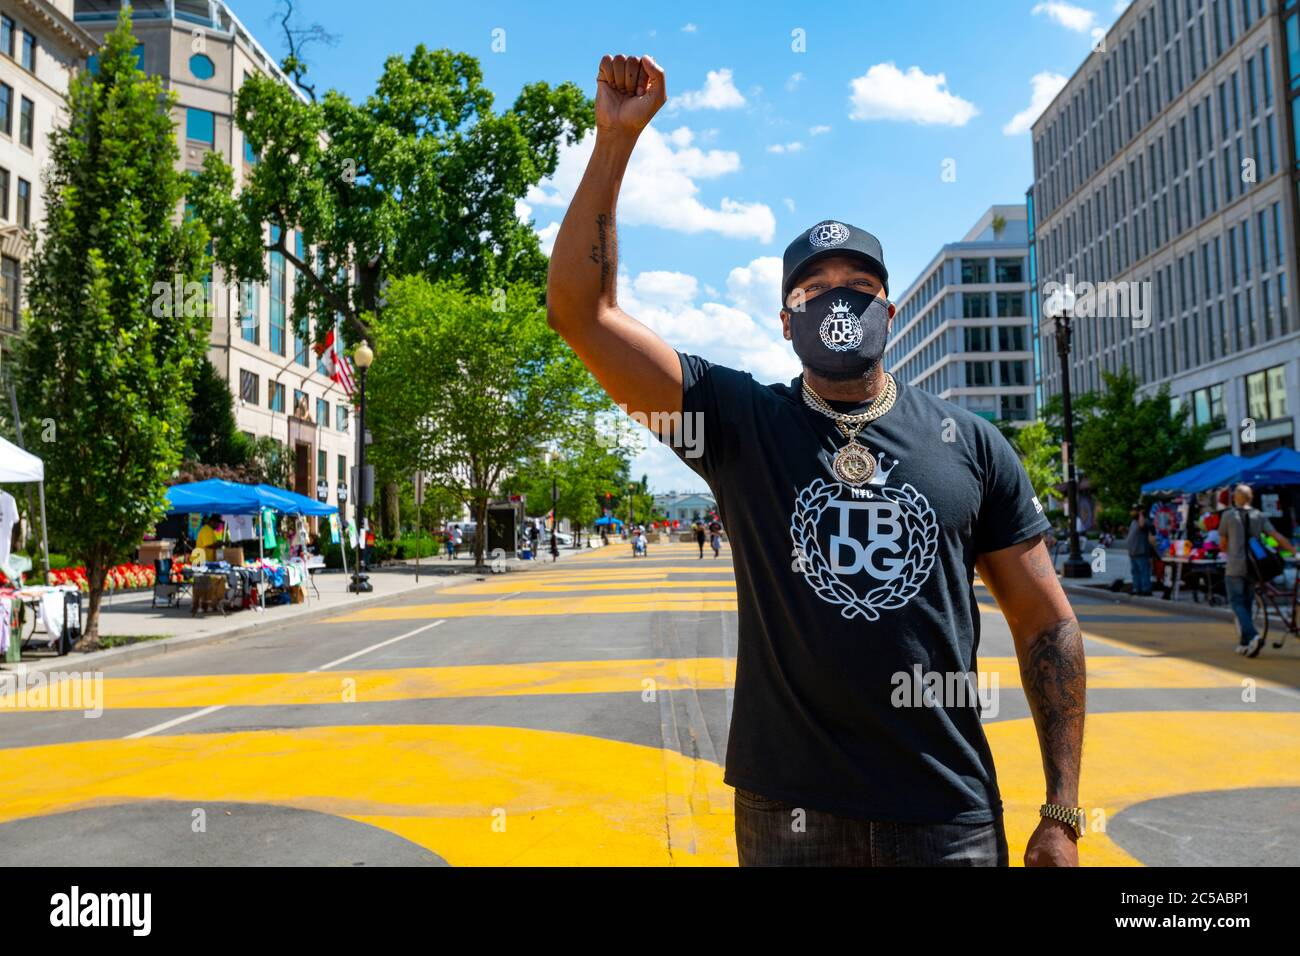 usa-washington-dc-black-lives-matter-plaza-after-the-george-floyd-protests-for-racial-injustice-rapper-grafh-with-raised-fist-wearing-a-mask-2C5ABP1.jpg